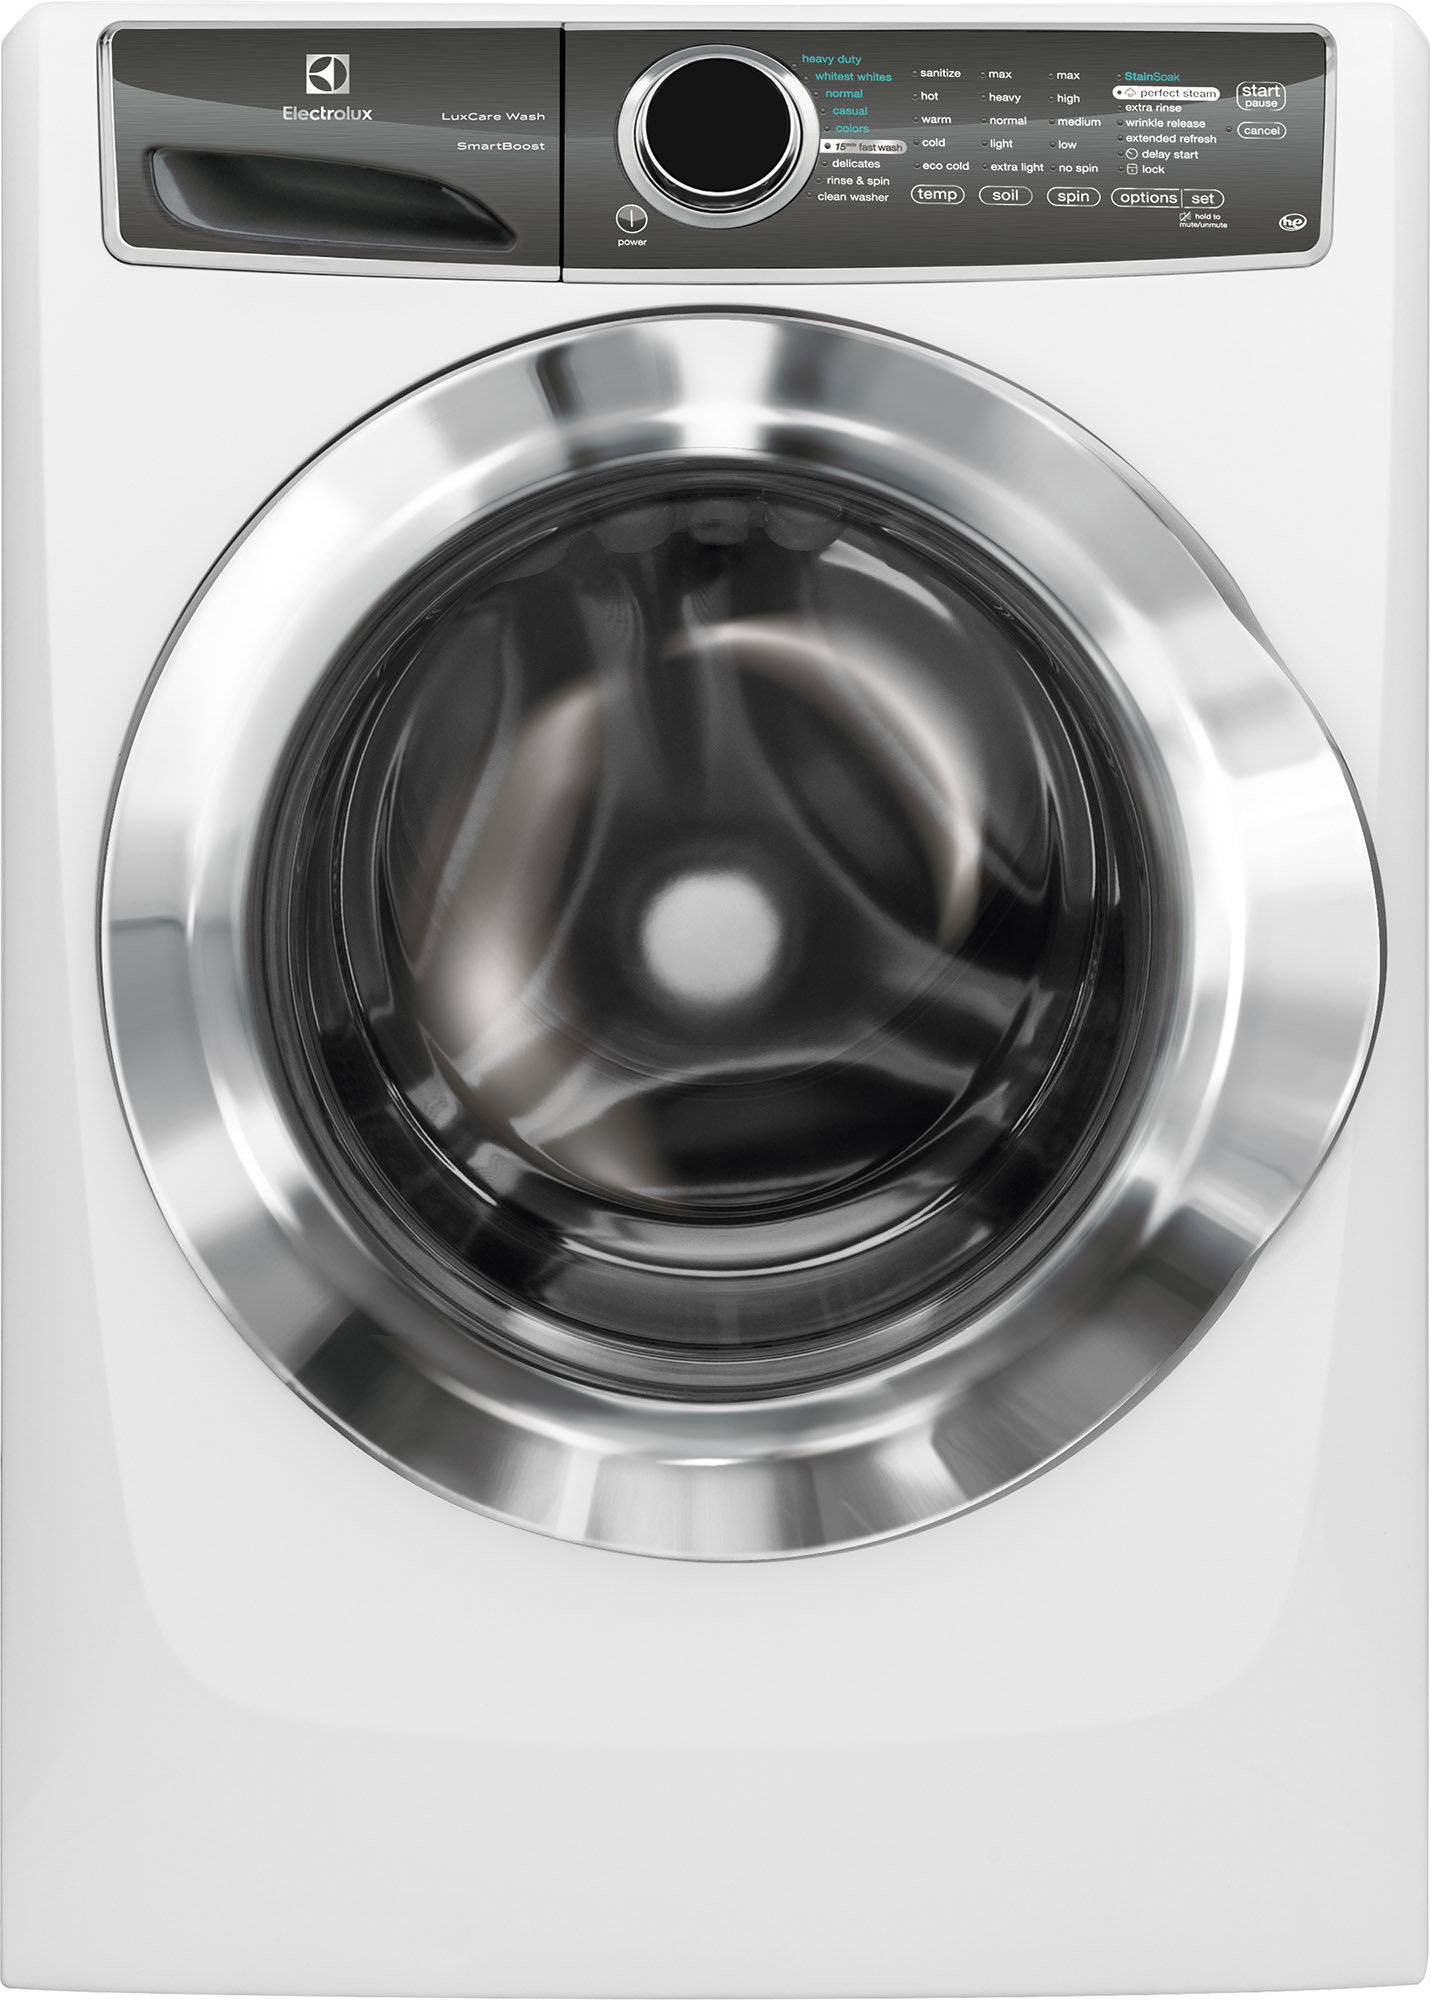 The EFLS617SIW combines some of the best design elements that Electrolux has come up with over the years.